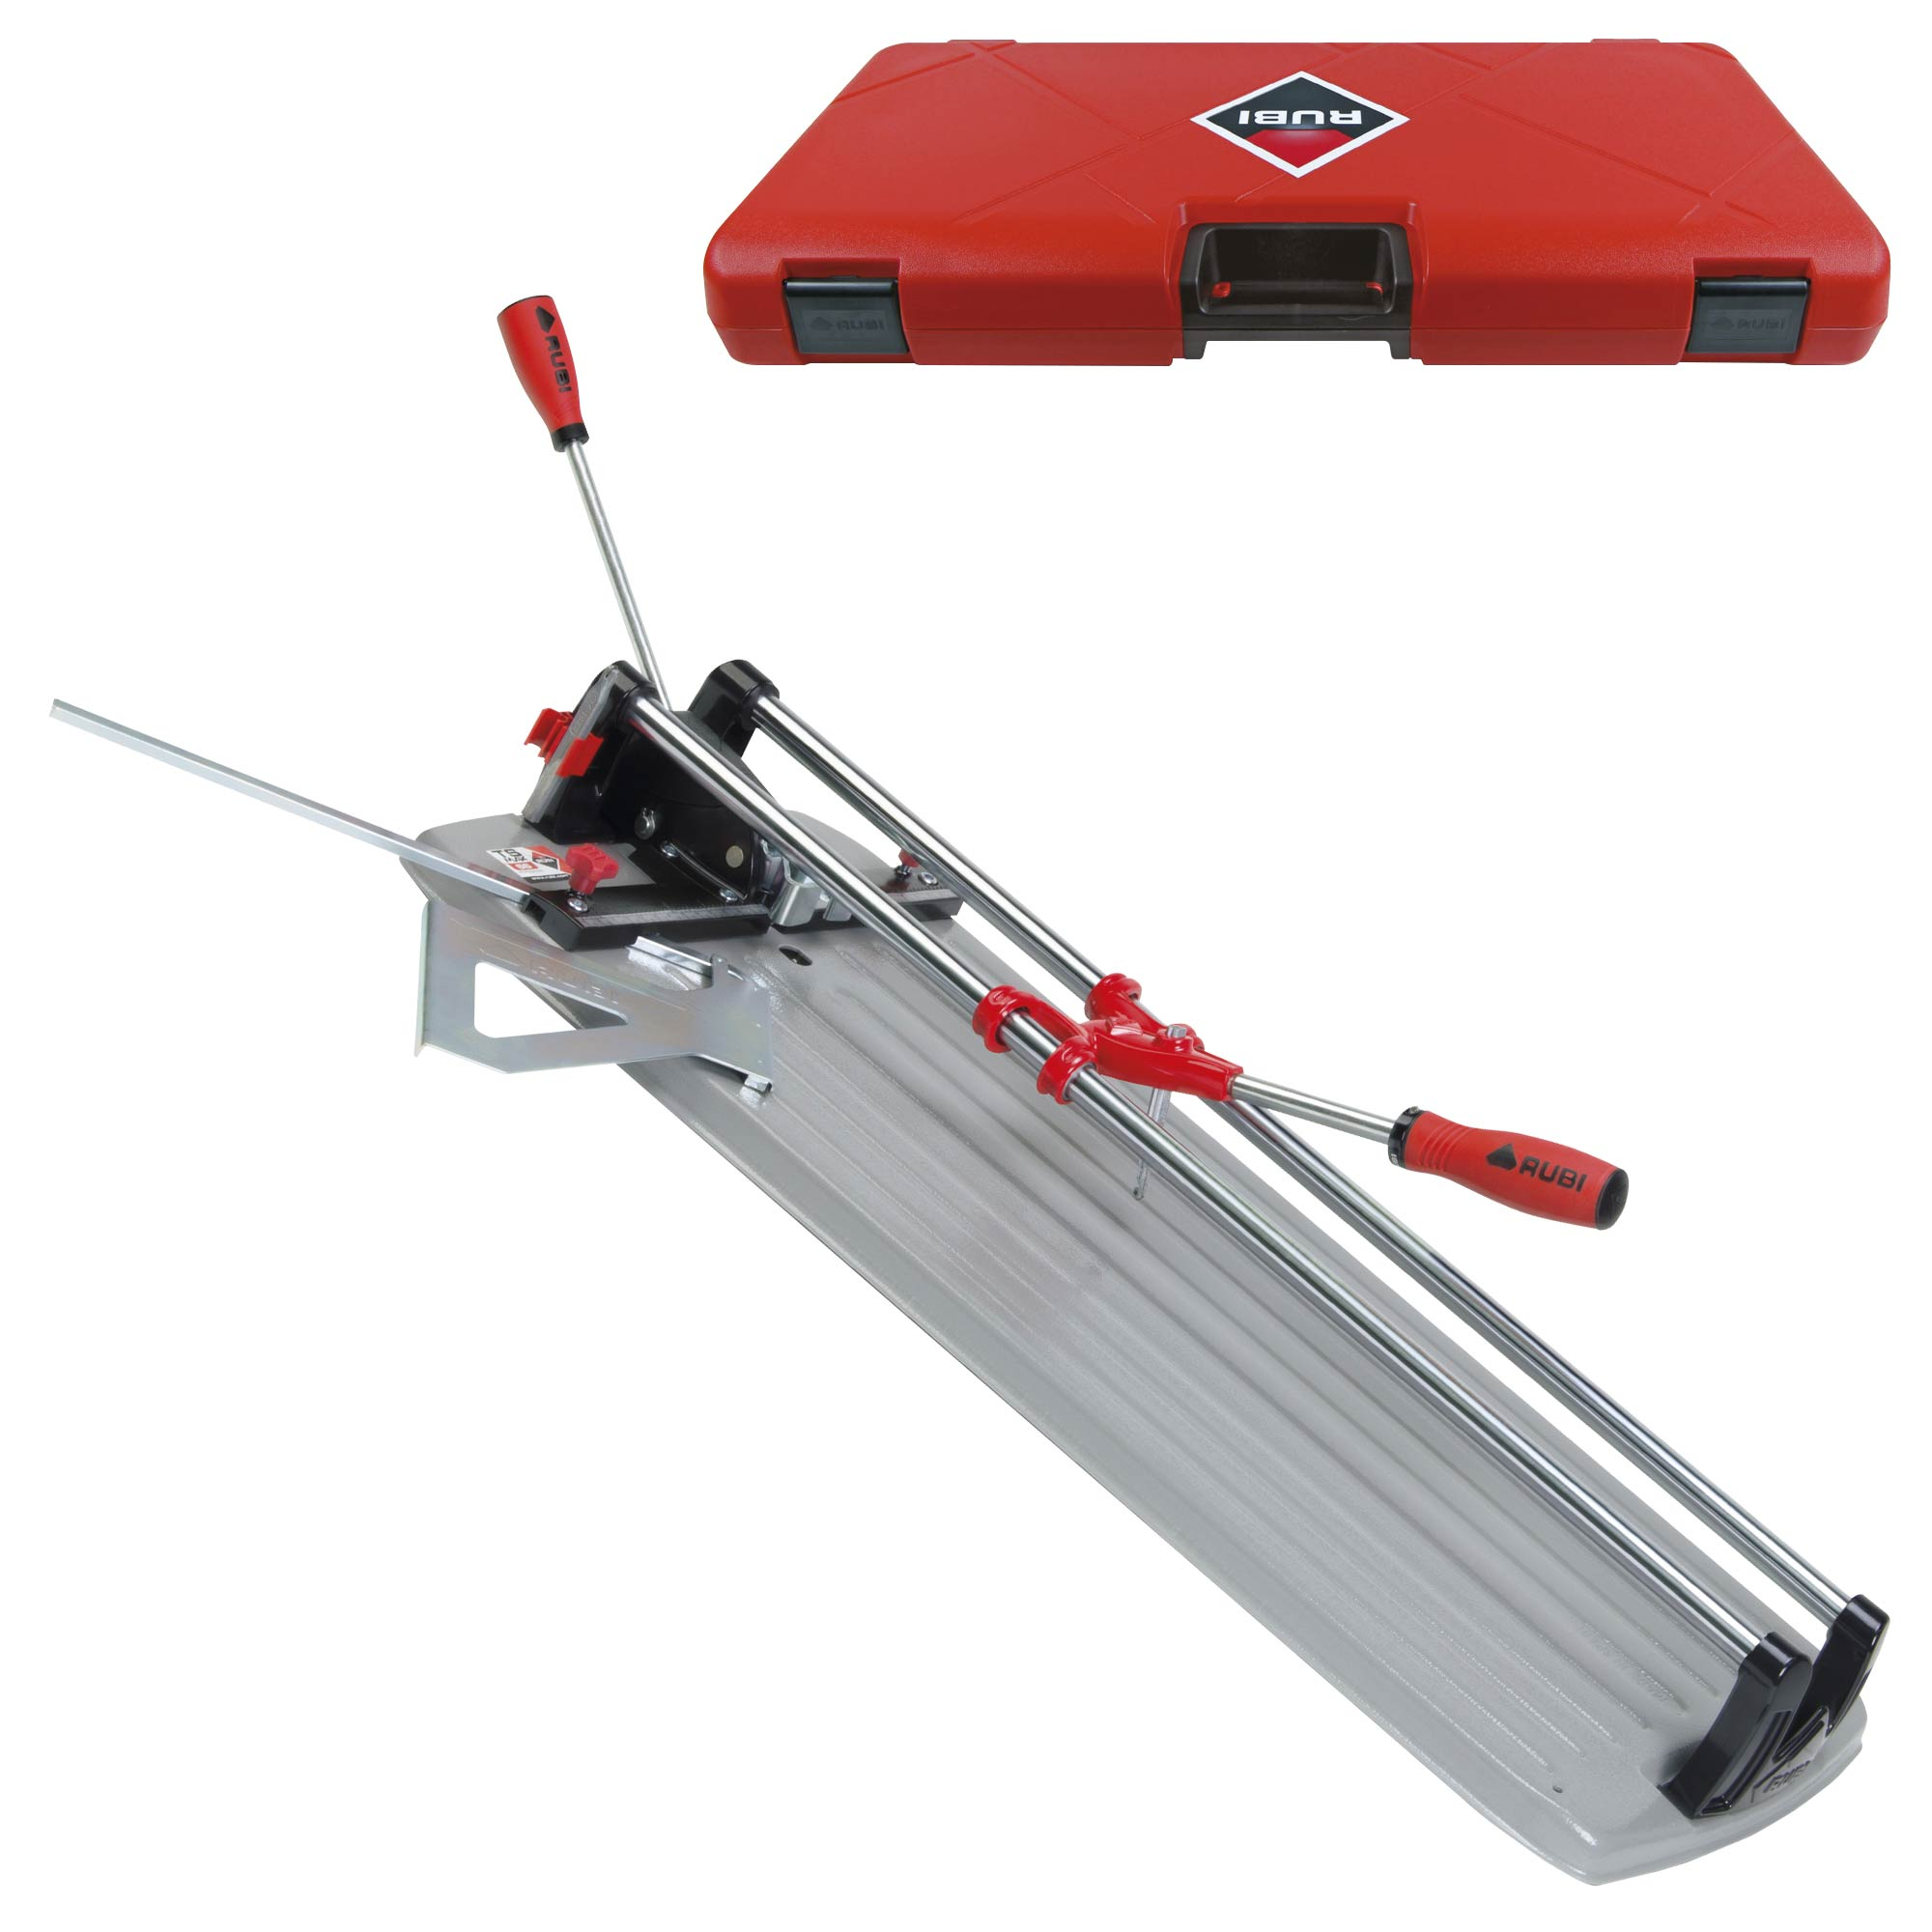 rubi ts66 max rubi 18974 26 39 39 tile cutter. Black Bedroom Furniture Sets. Home Design Ideas